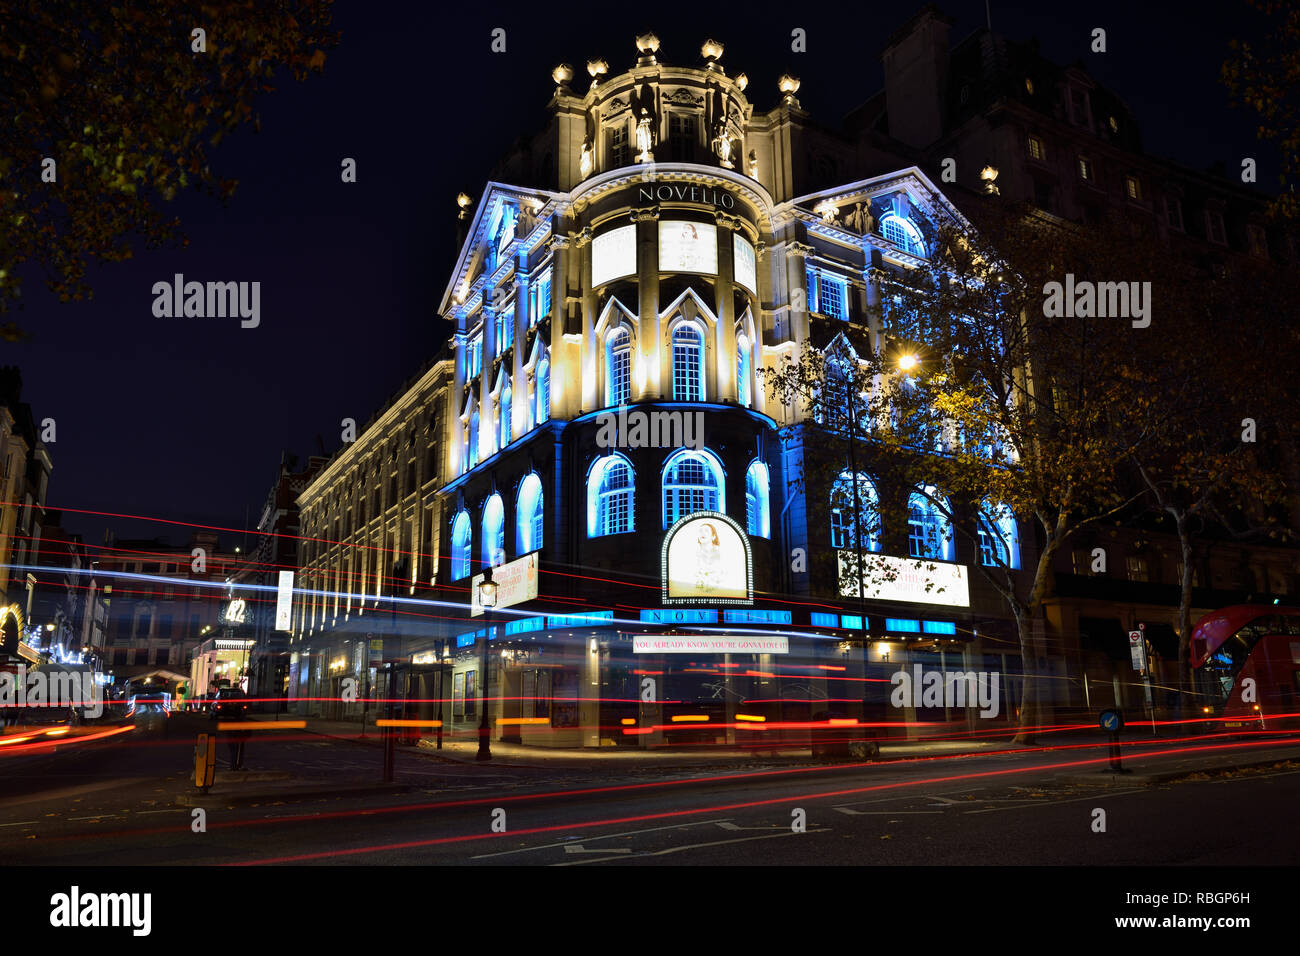 Novello theatre at night, Aldwych, London, United Kingdom - Stock Image